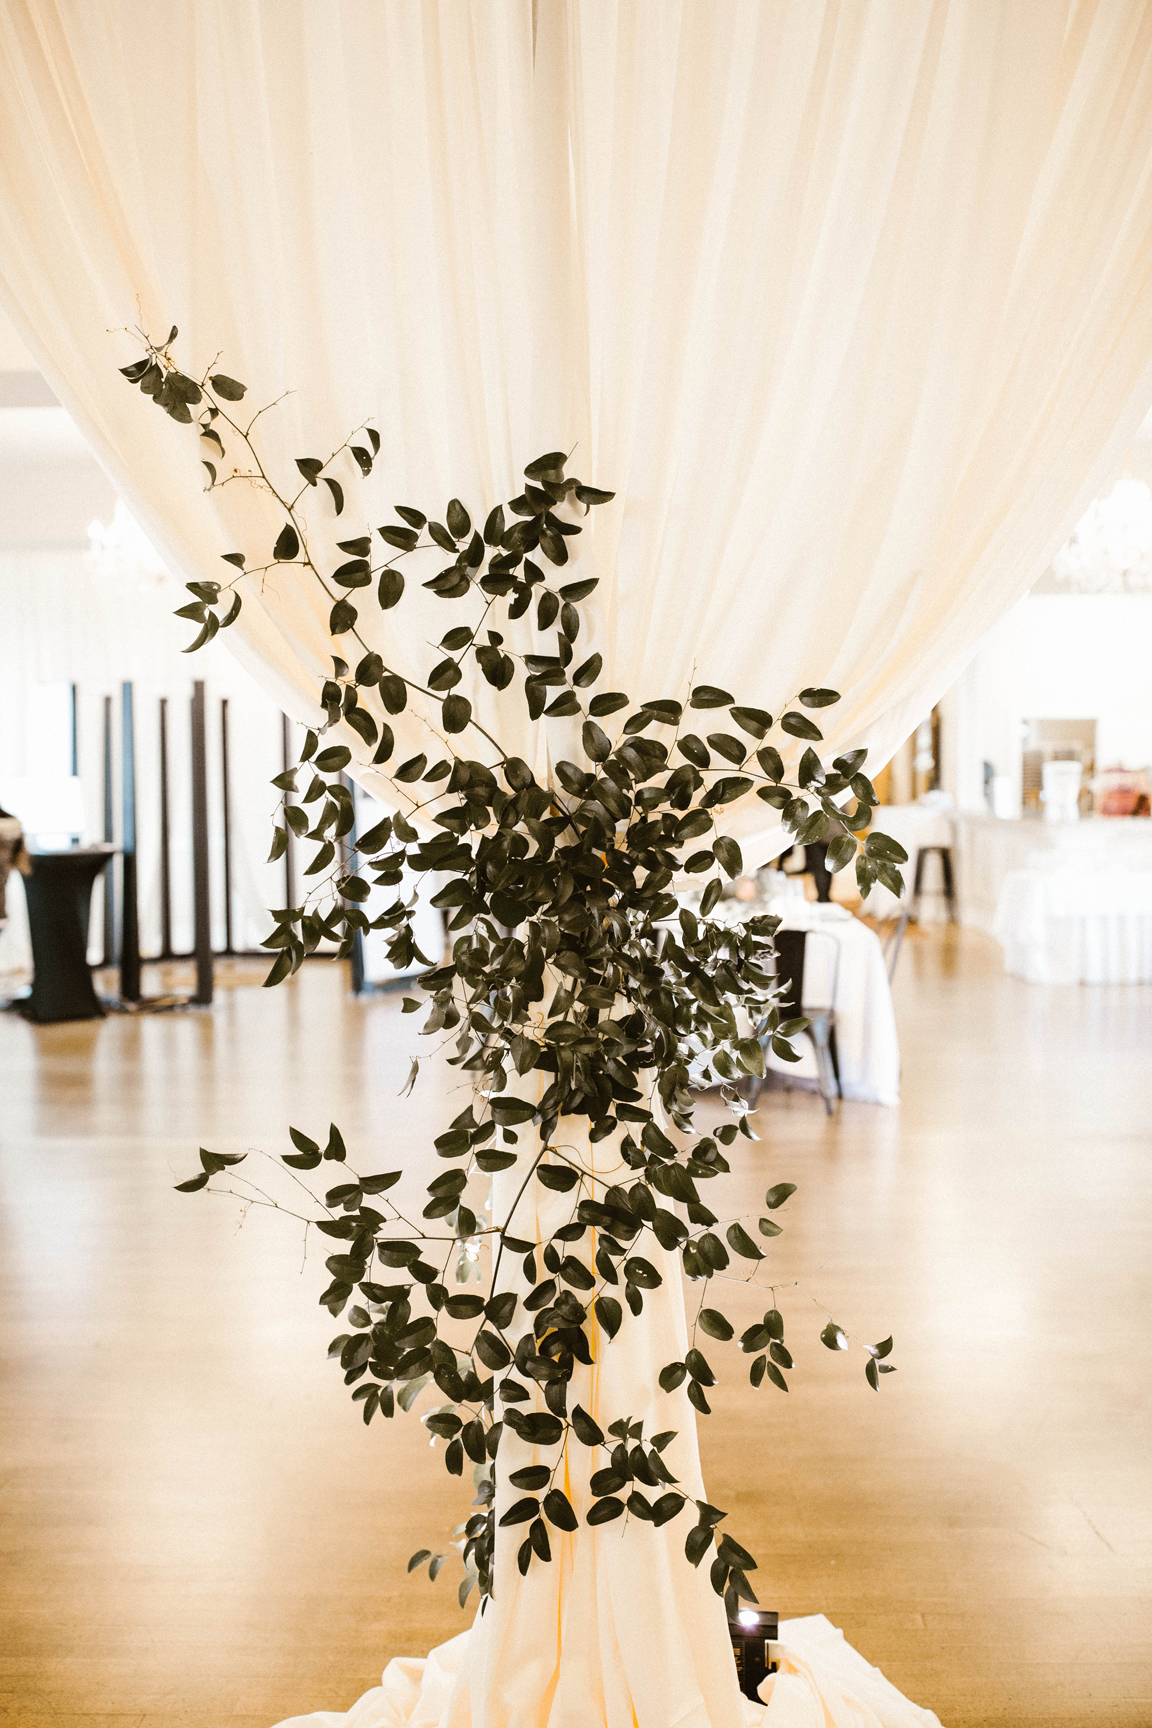 Hollywood+Anderson+House_Woodinville_2017_Weddings+In+Woodinville177.jpg